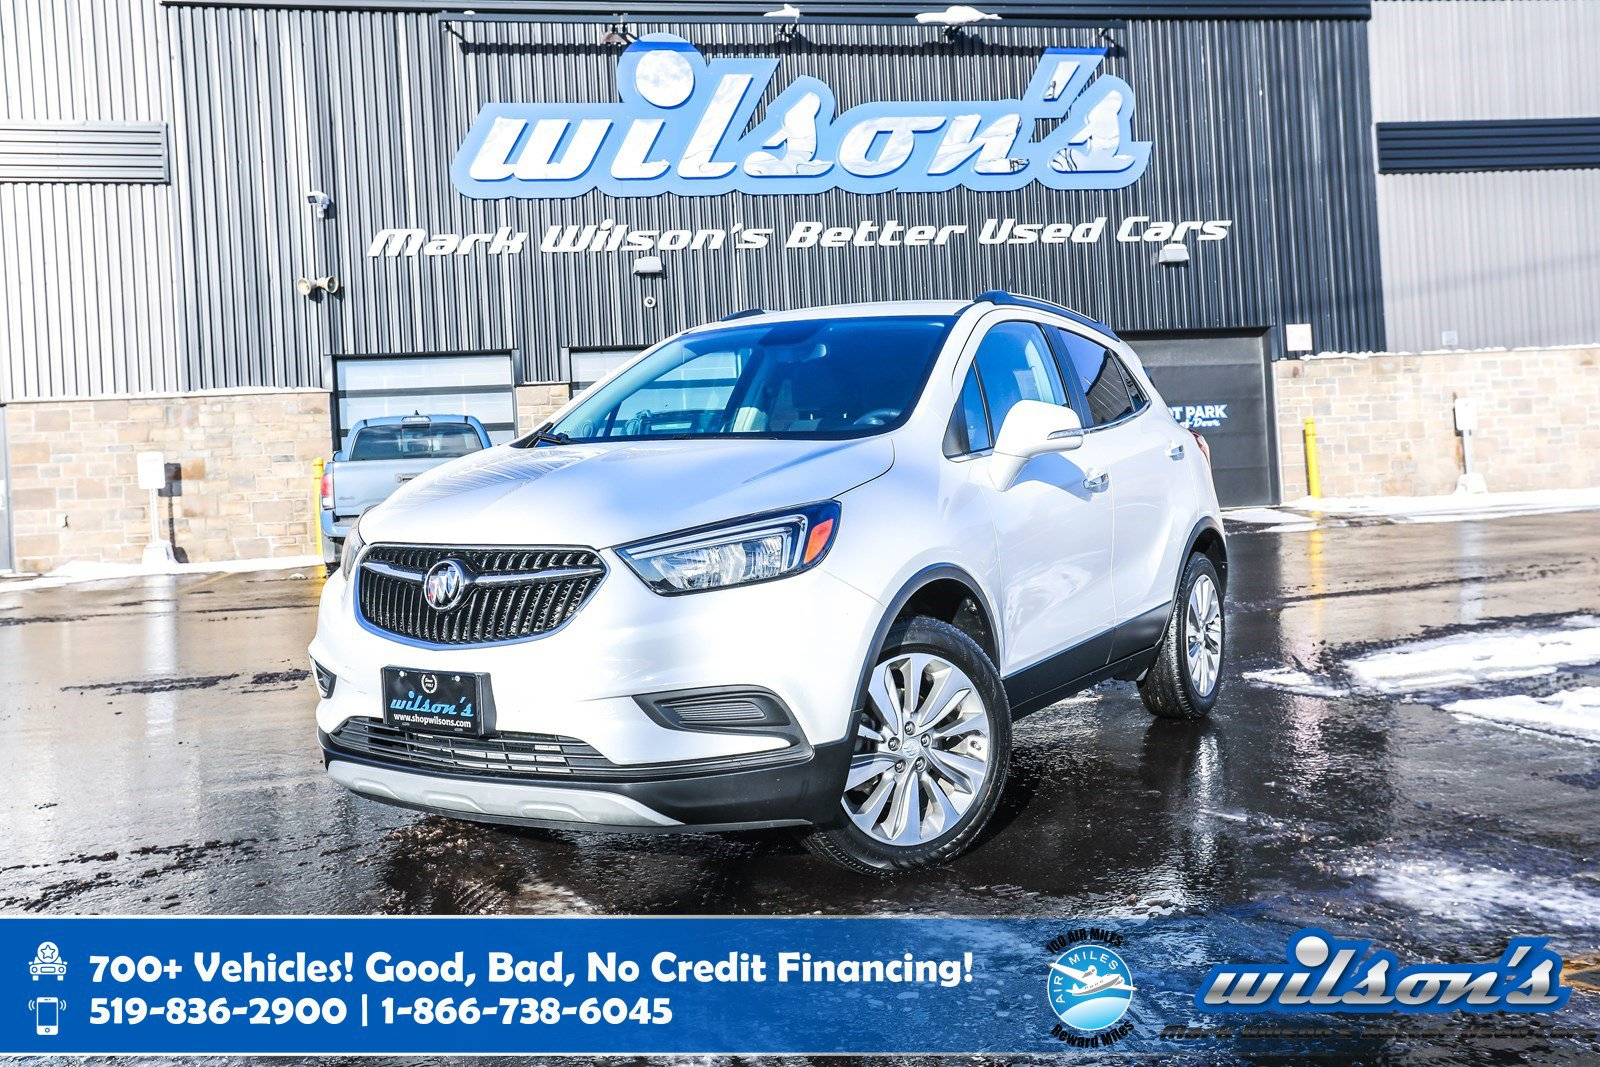 Certified Pre-Owned 2019 Buick Encore Preferred AWD, Leather Trim, Rear Camera, Power Seat, Bluetooth and more!